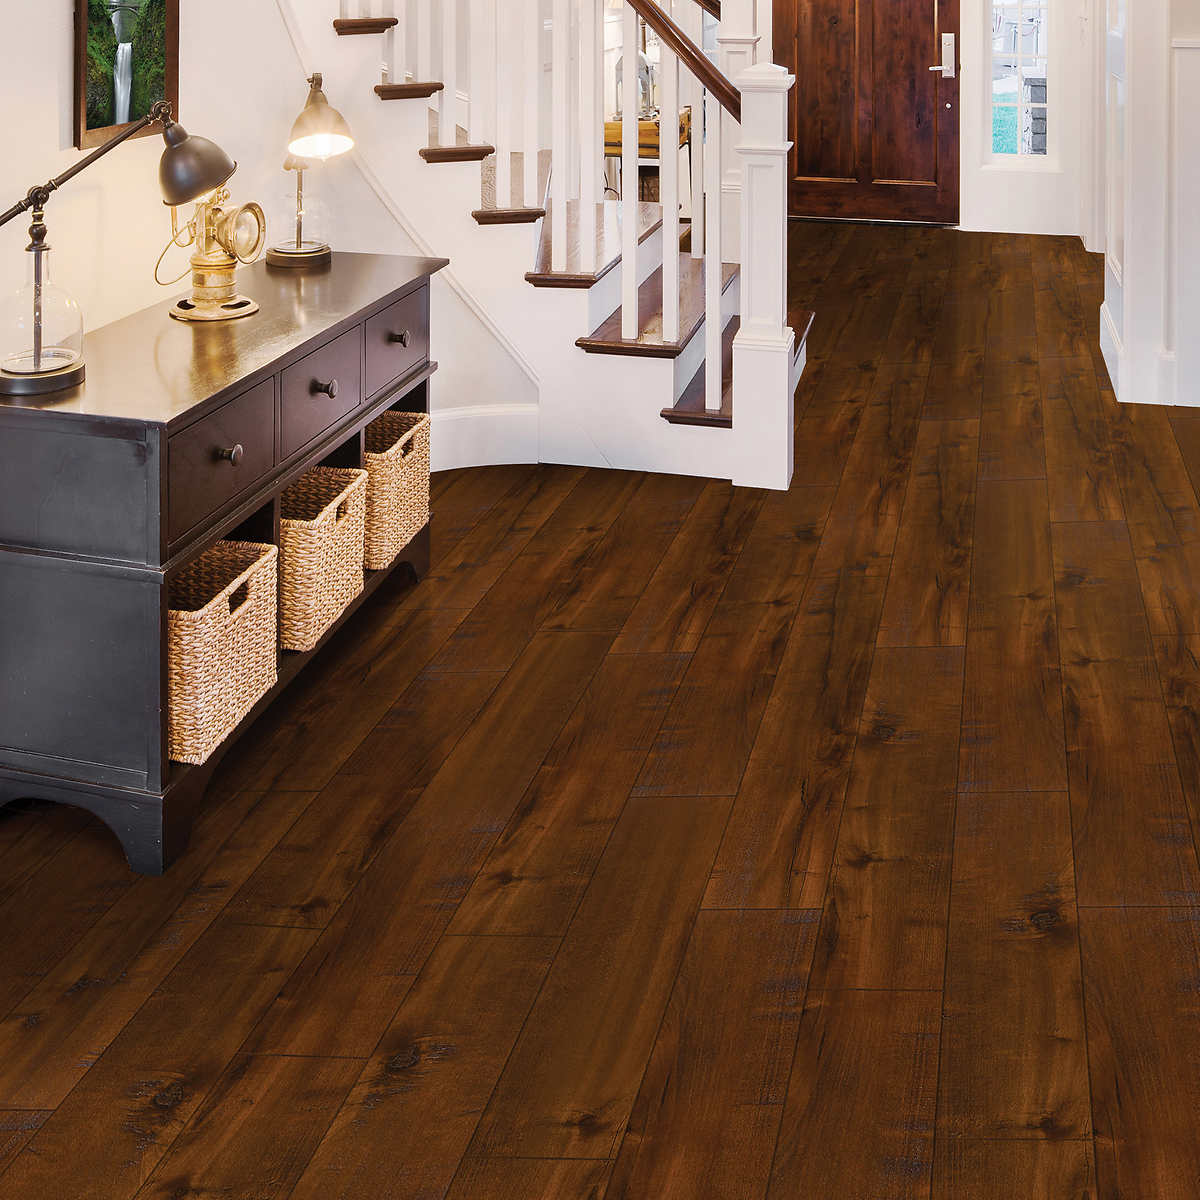 Golden Select Cayenne 16 5 Cm 6 5 In Laminate Flooring